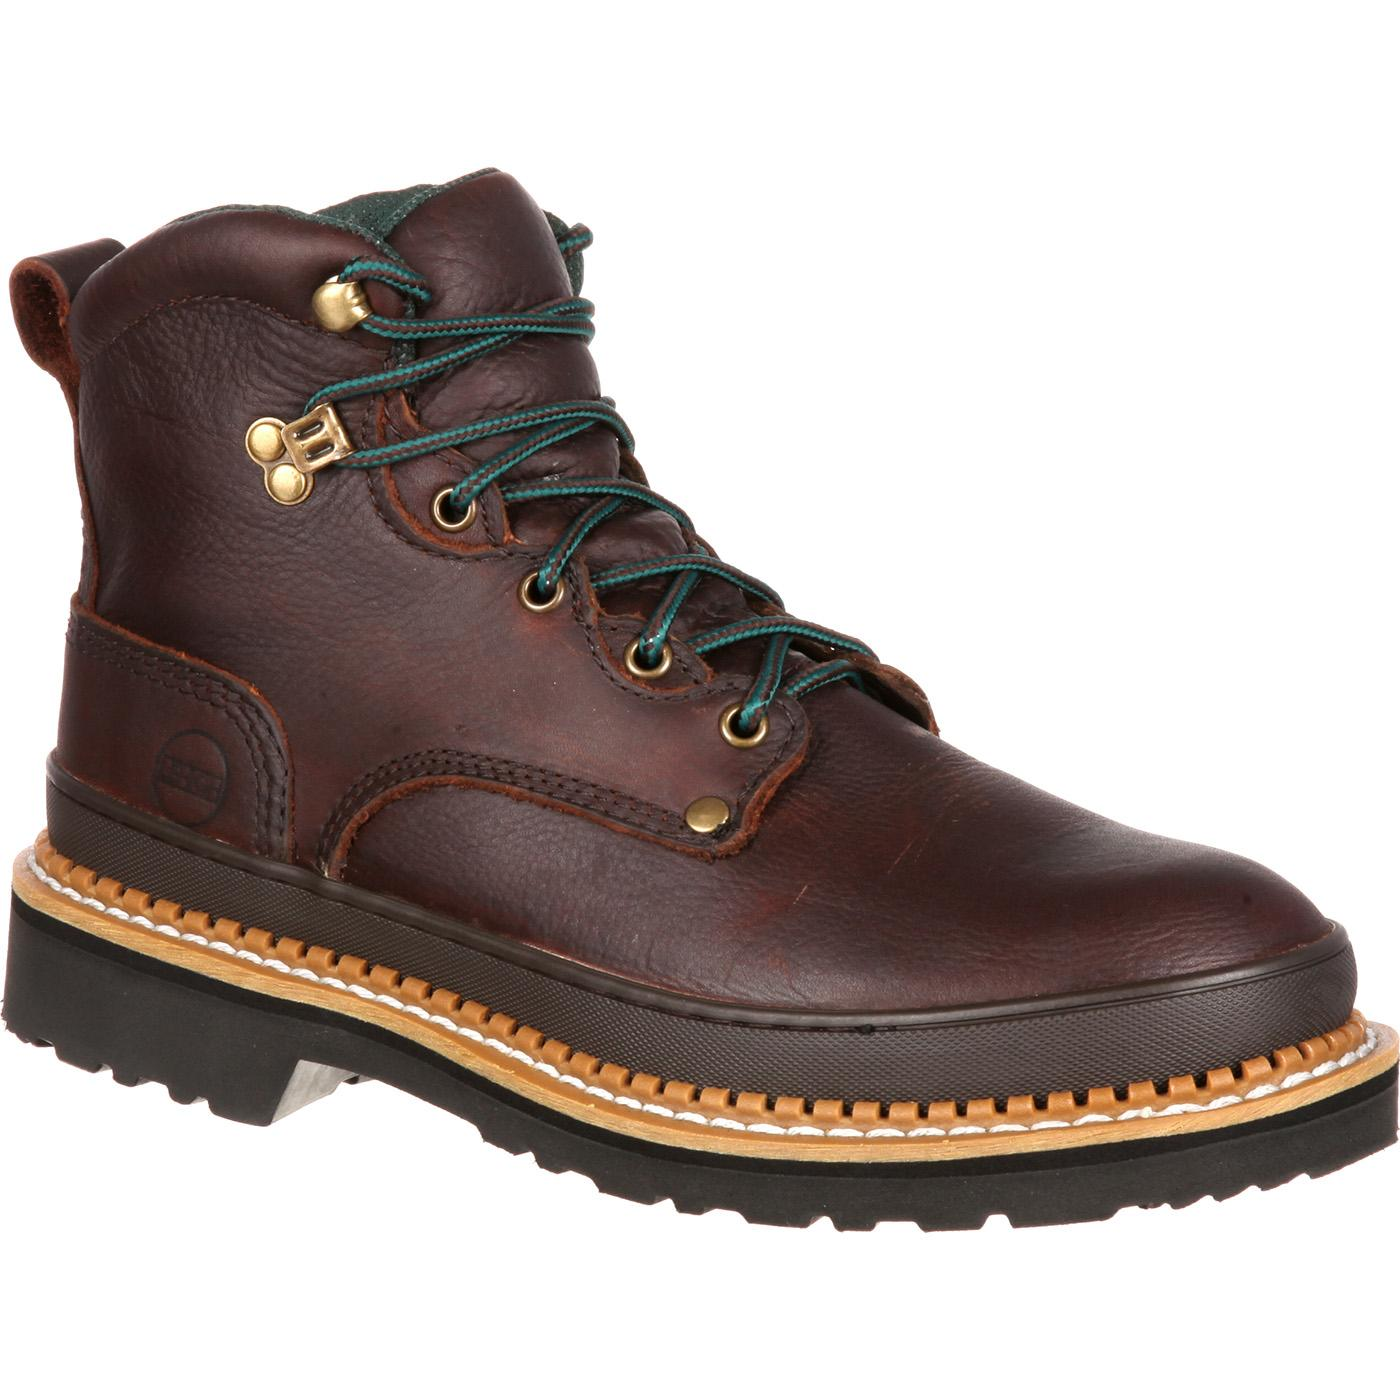 Mens Boots Holiday Sale: Save up to 65% off! Shop damascustopboutique.tk's huge selection of mens boots, work boots, chukka boots, ankle boots, hiking boots, cowboy boots, winter & snow boots, fashion boots, and more. Over 4, styles available. FREE Shipping & Exchanges, and a % price guarantee.